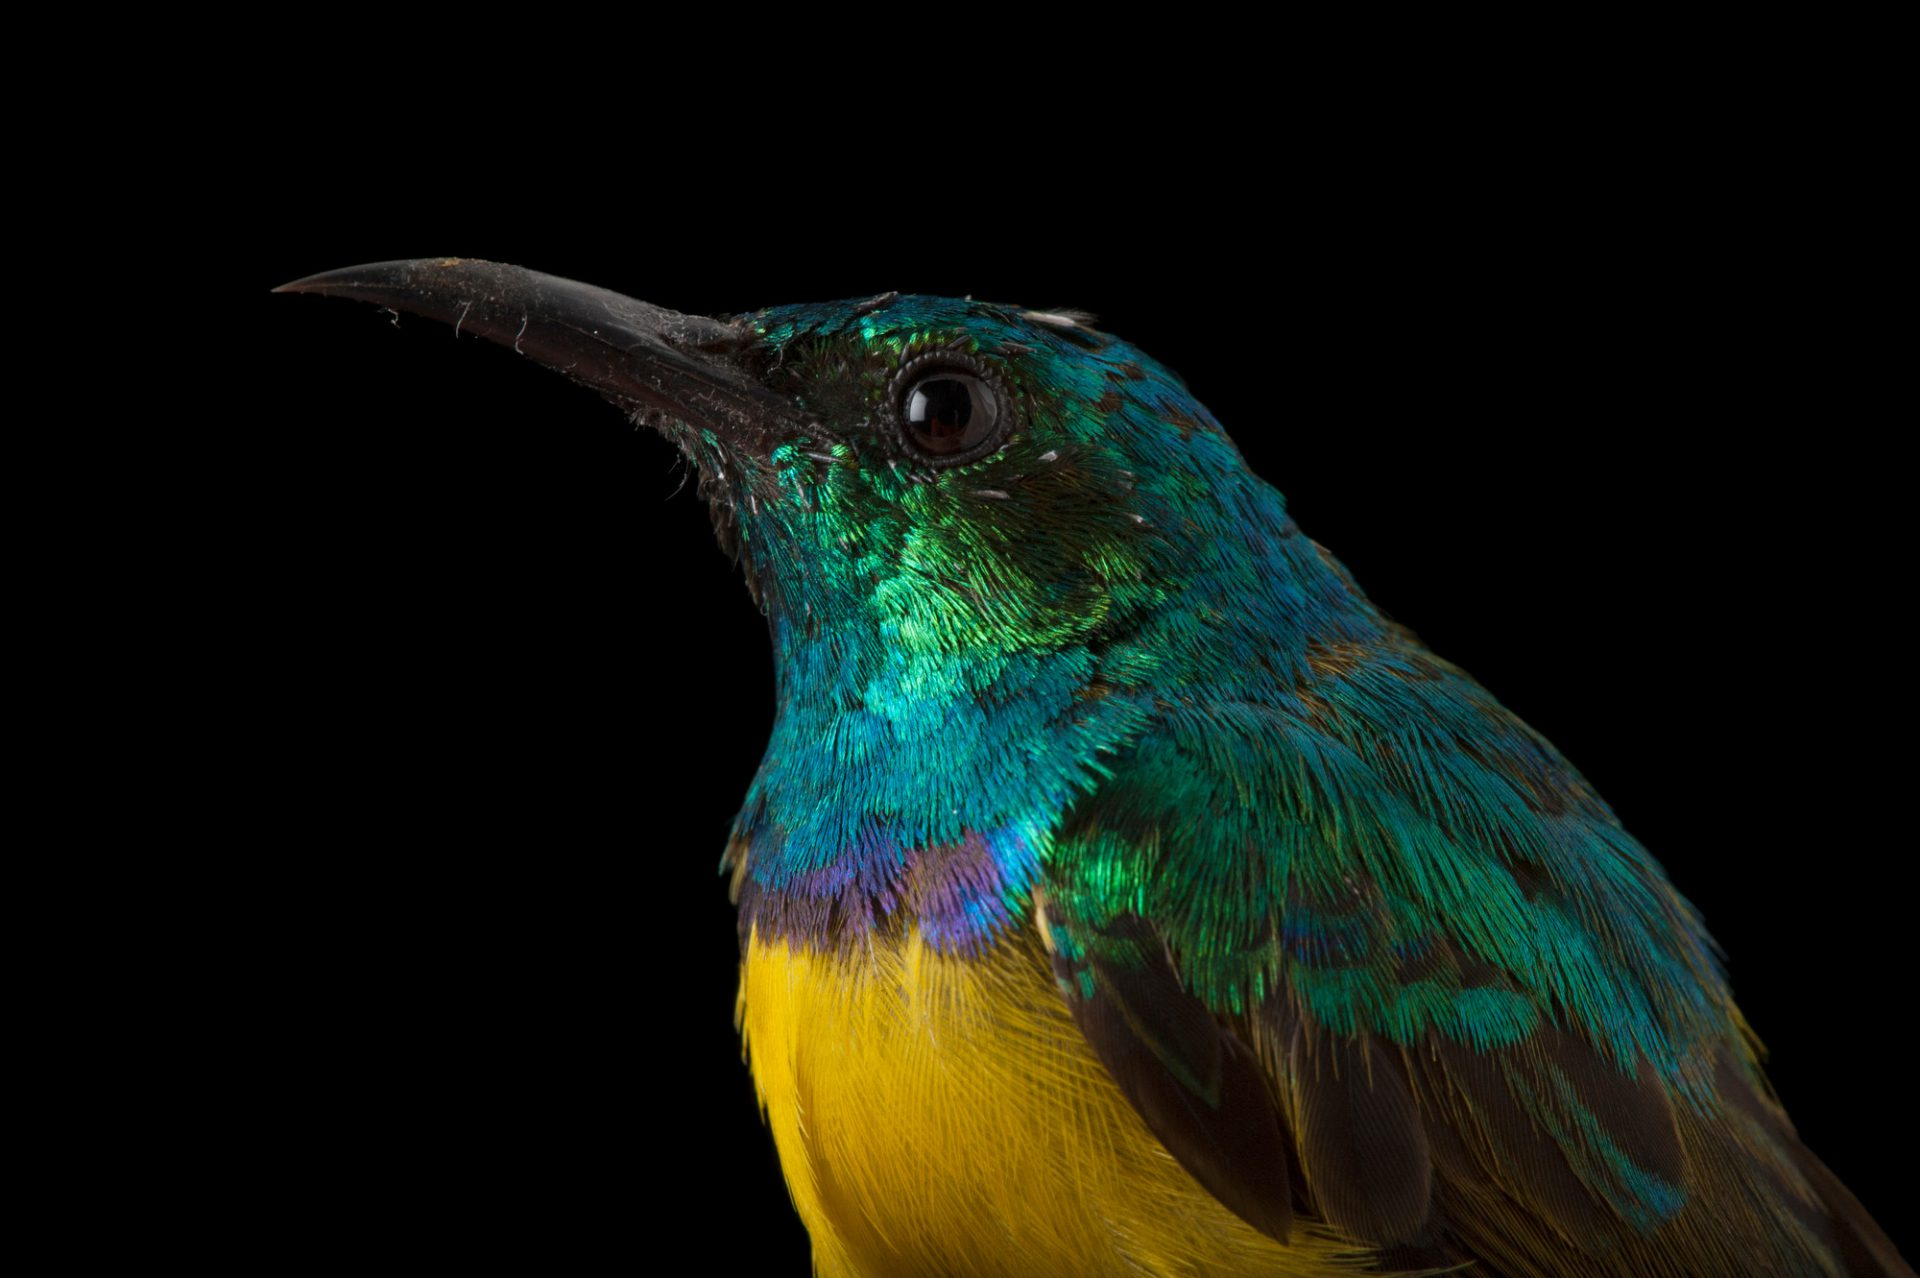 Collared sunbird (Hedydipna collaris) from Chitengo Camp in Gorongosa National Park in Mozambique, Africa.